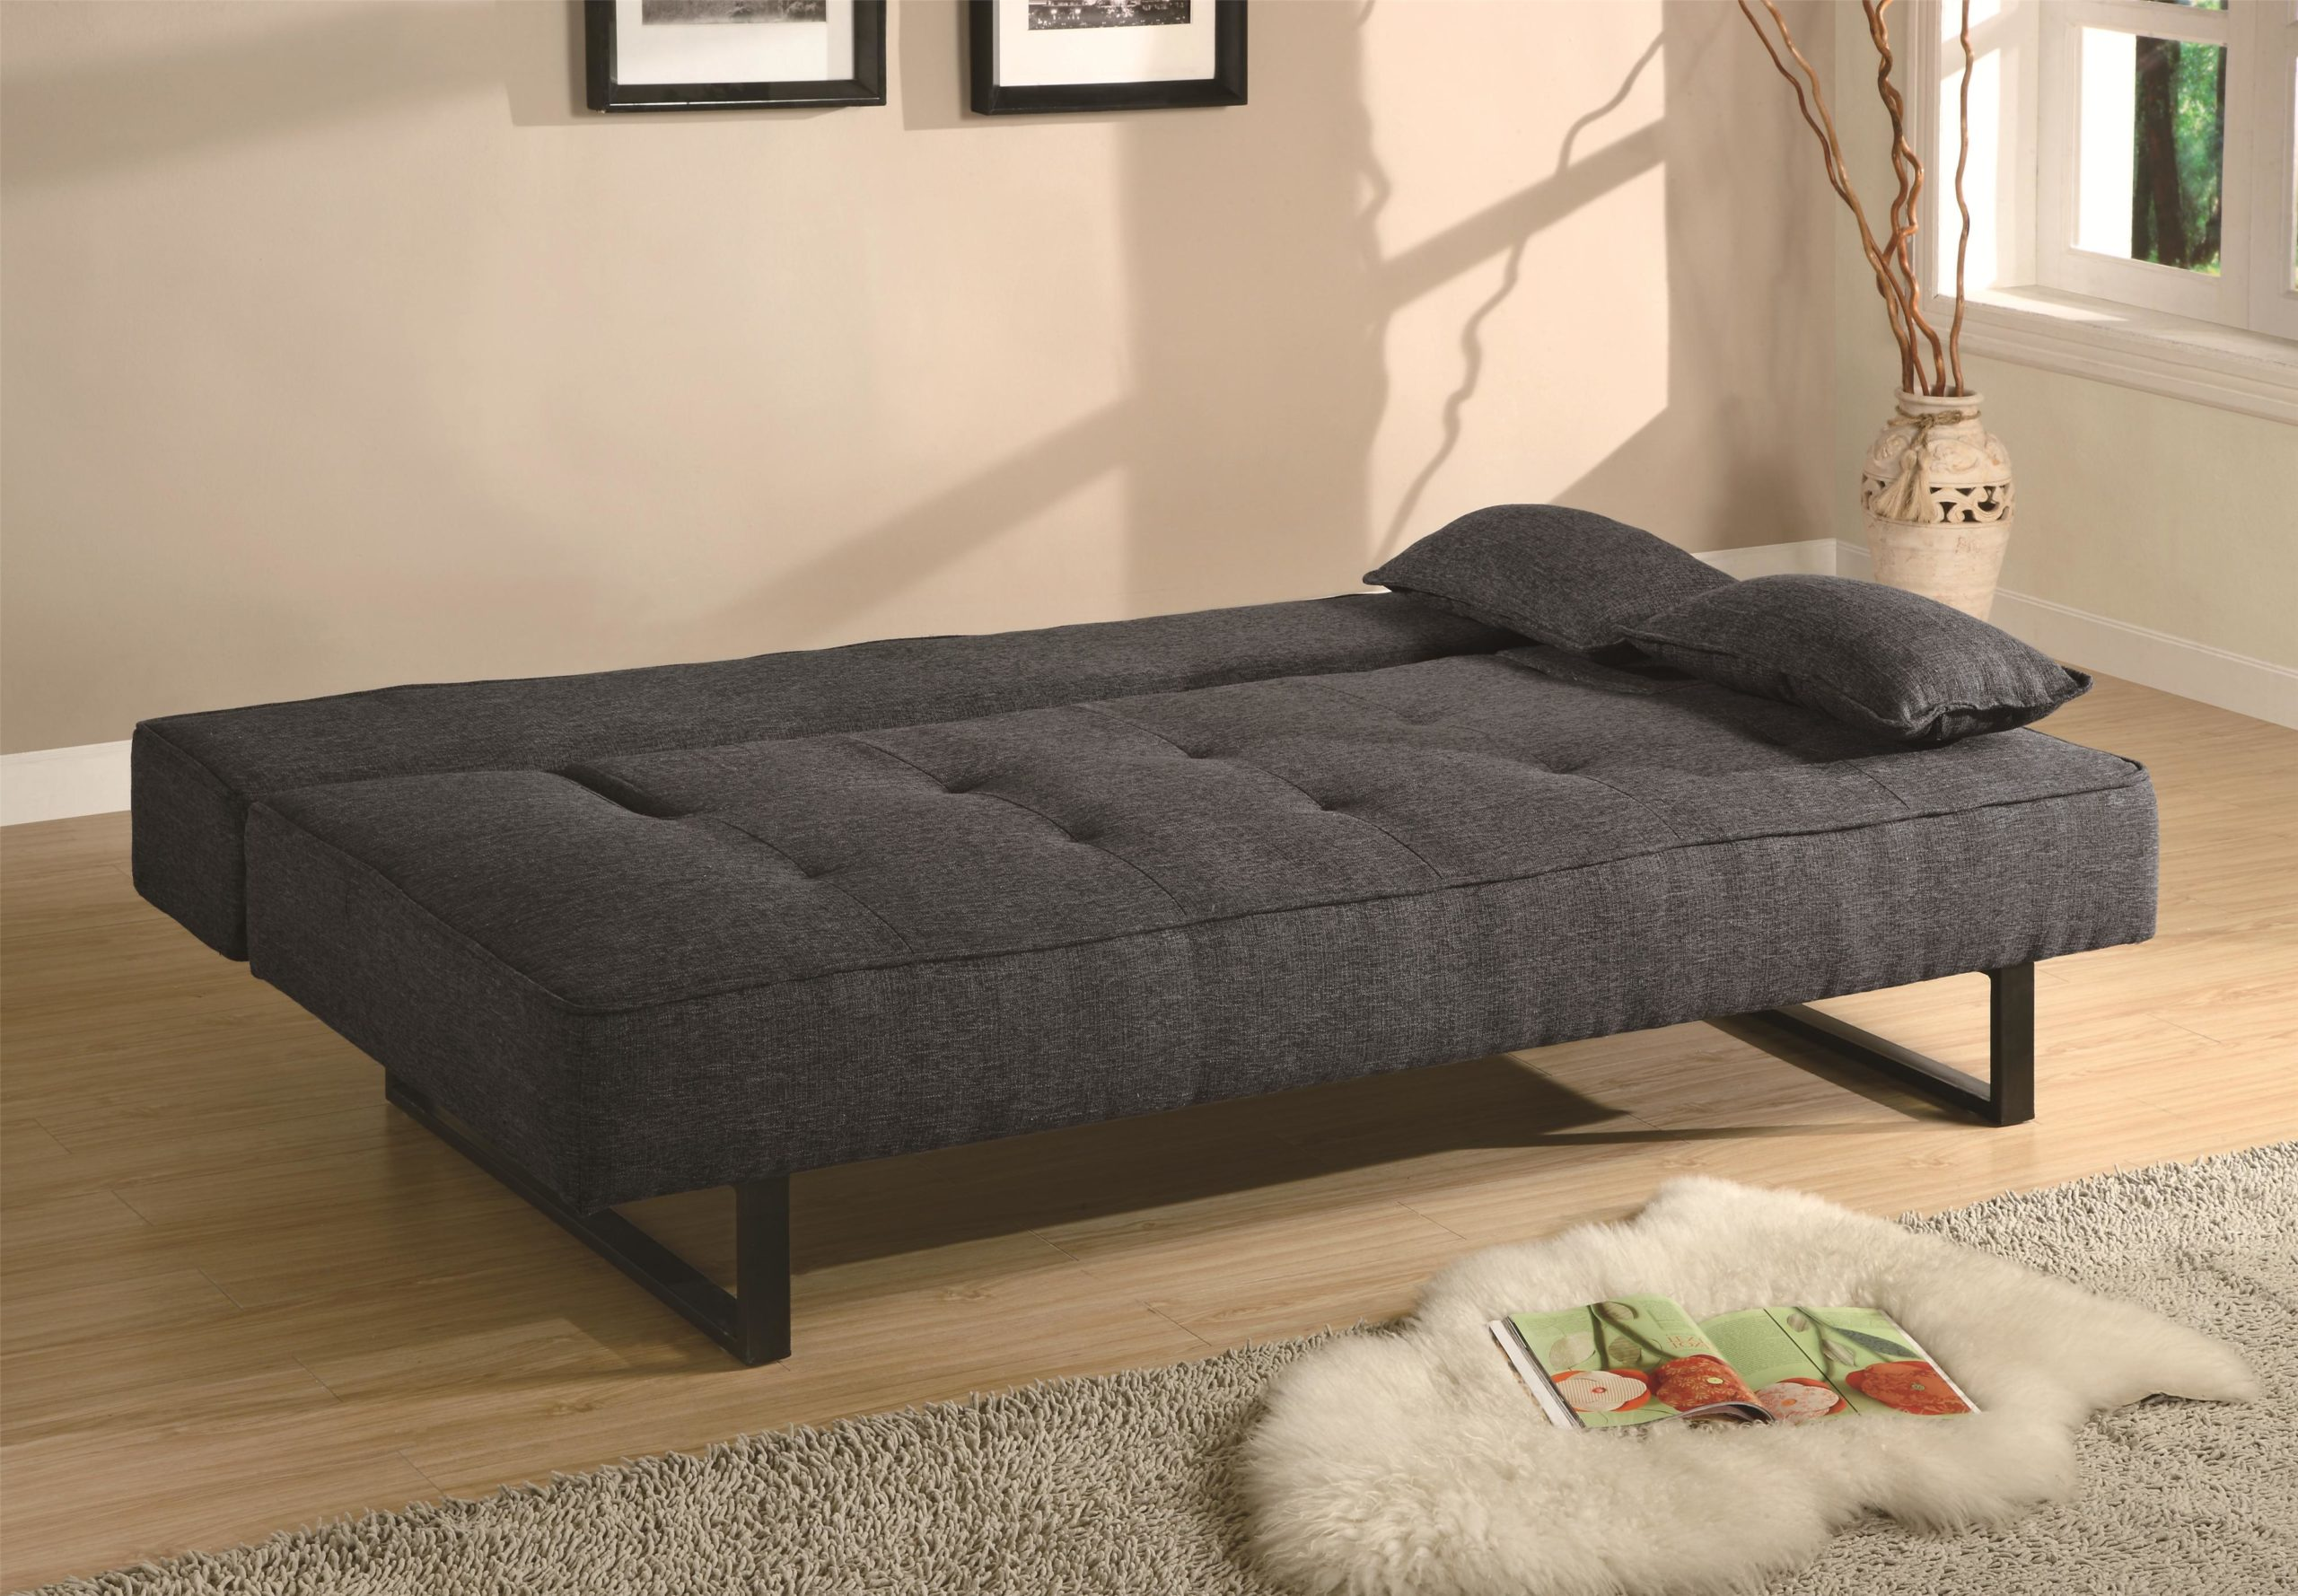 Grey Contemporary Armless Sofa Bed down position